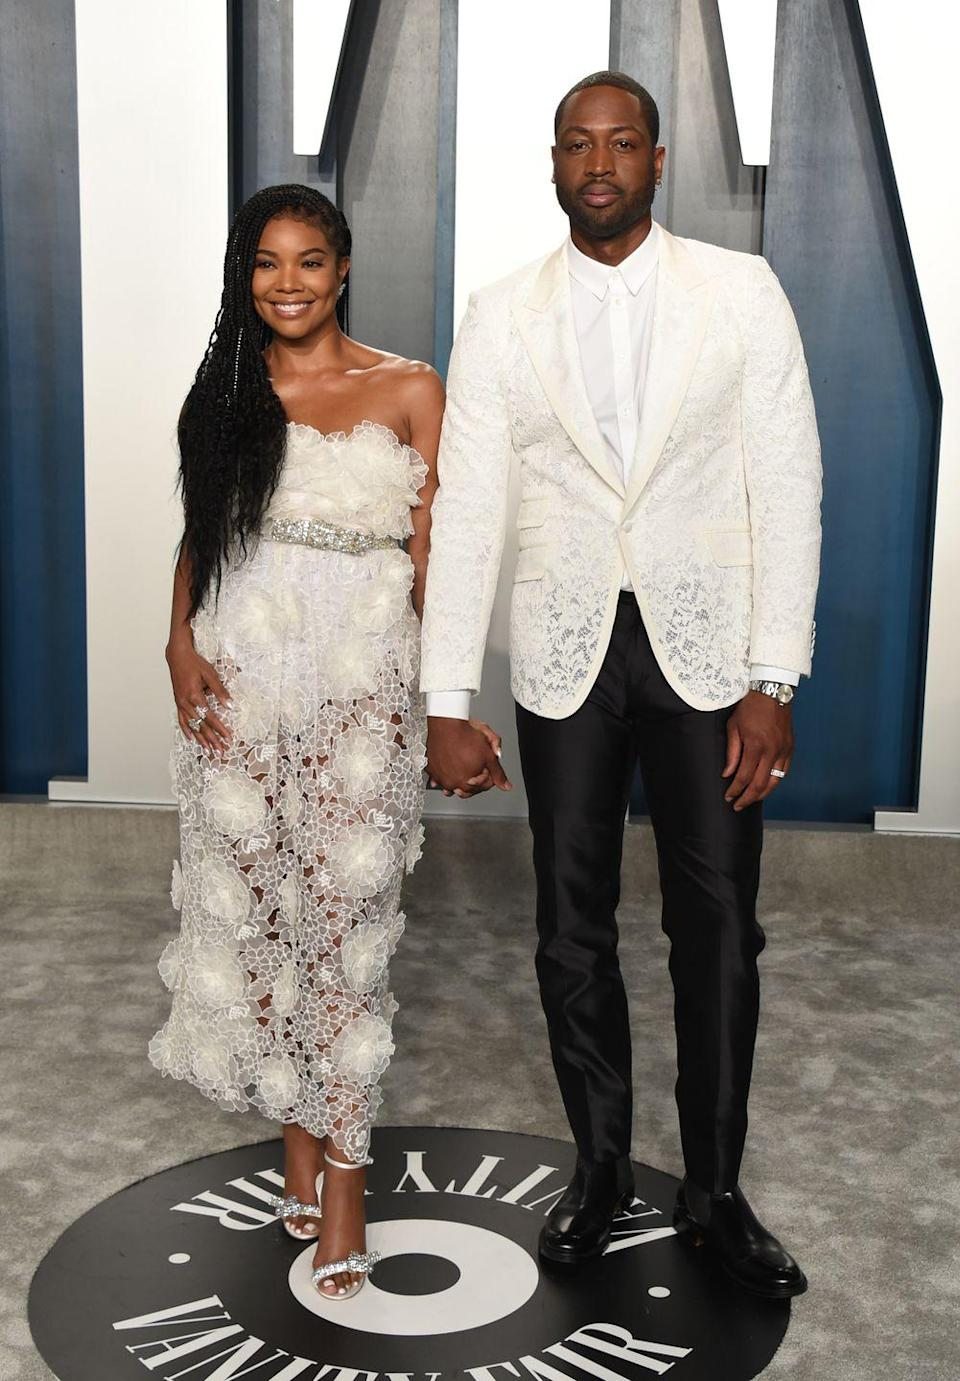 """<p><strong>Age gap:</strong> 10 years</p><p><a href=""""https://www.goodhousekeeping.com/life/entertainment/a27546355/gabrielle-union-husband-dwayne-wade/"""" rel=""""nofollow noopener"""" target=""""_blank"""" data-ylk=""""slk:Gabrielle and Dwyane"""" class=""""link rapid-noclick-resp"""">Gabrielle and Dwyane</a> are the couple that everyone loves to love. They officially got together in 2008 and now have a daughter together, Kaavia James.</p>"""